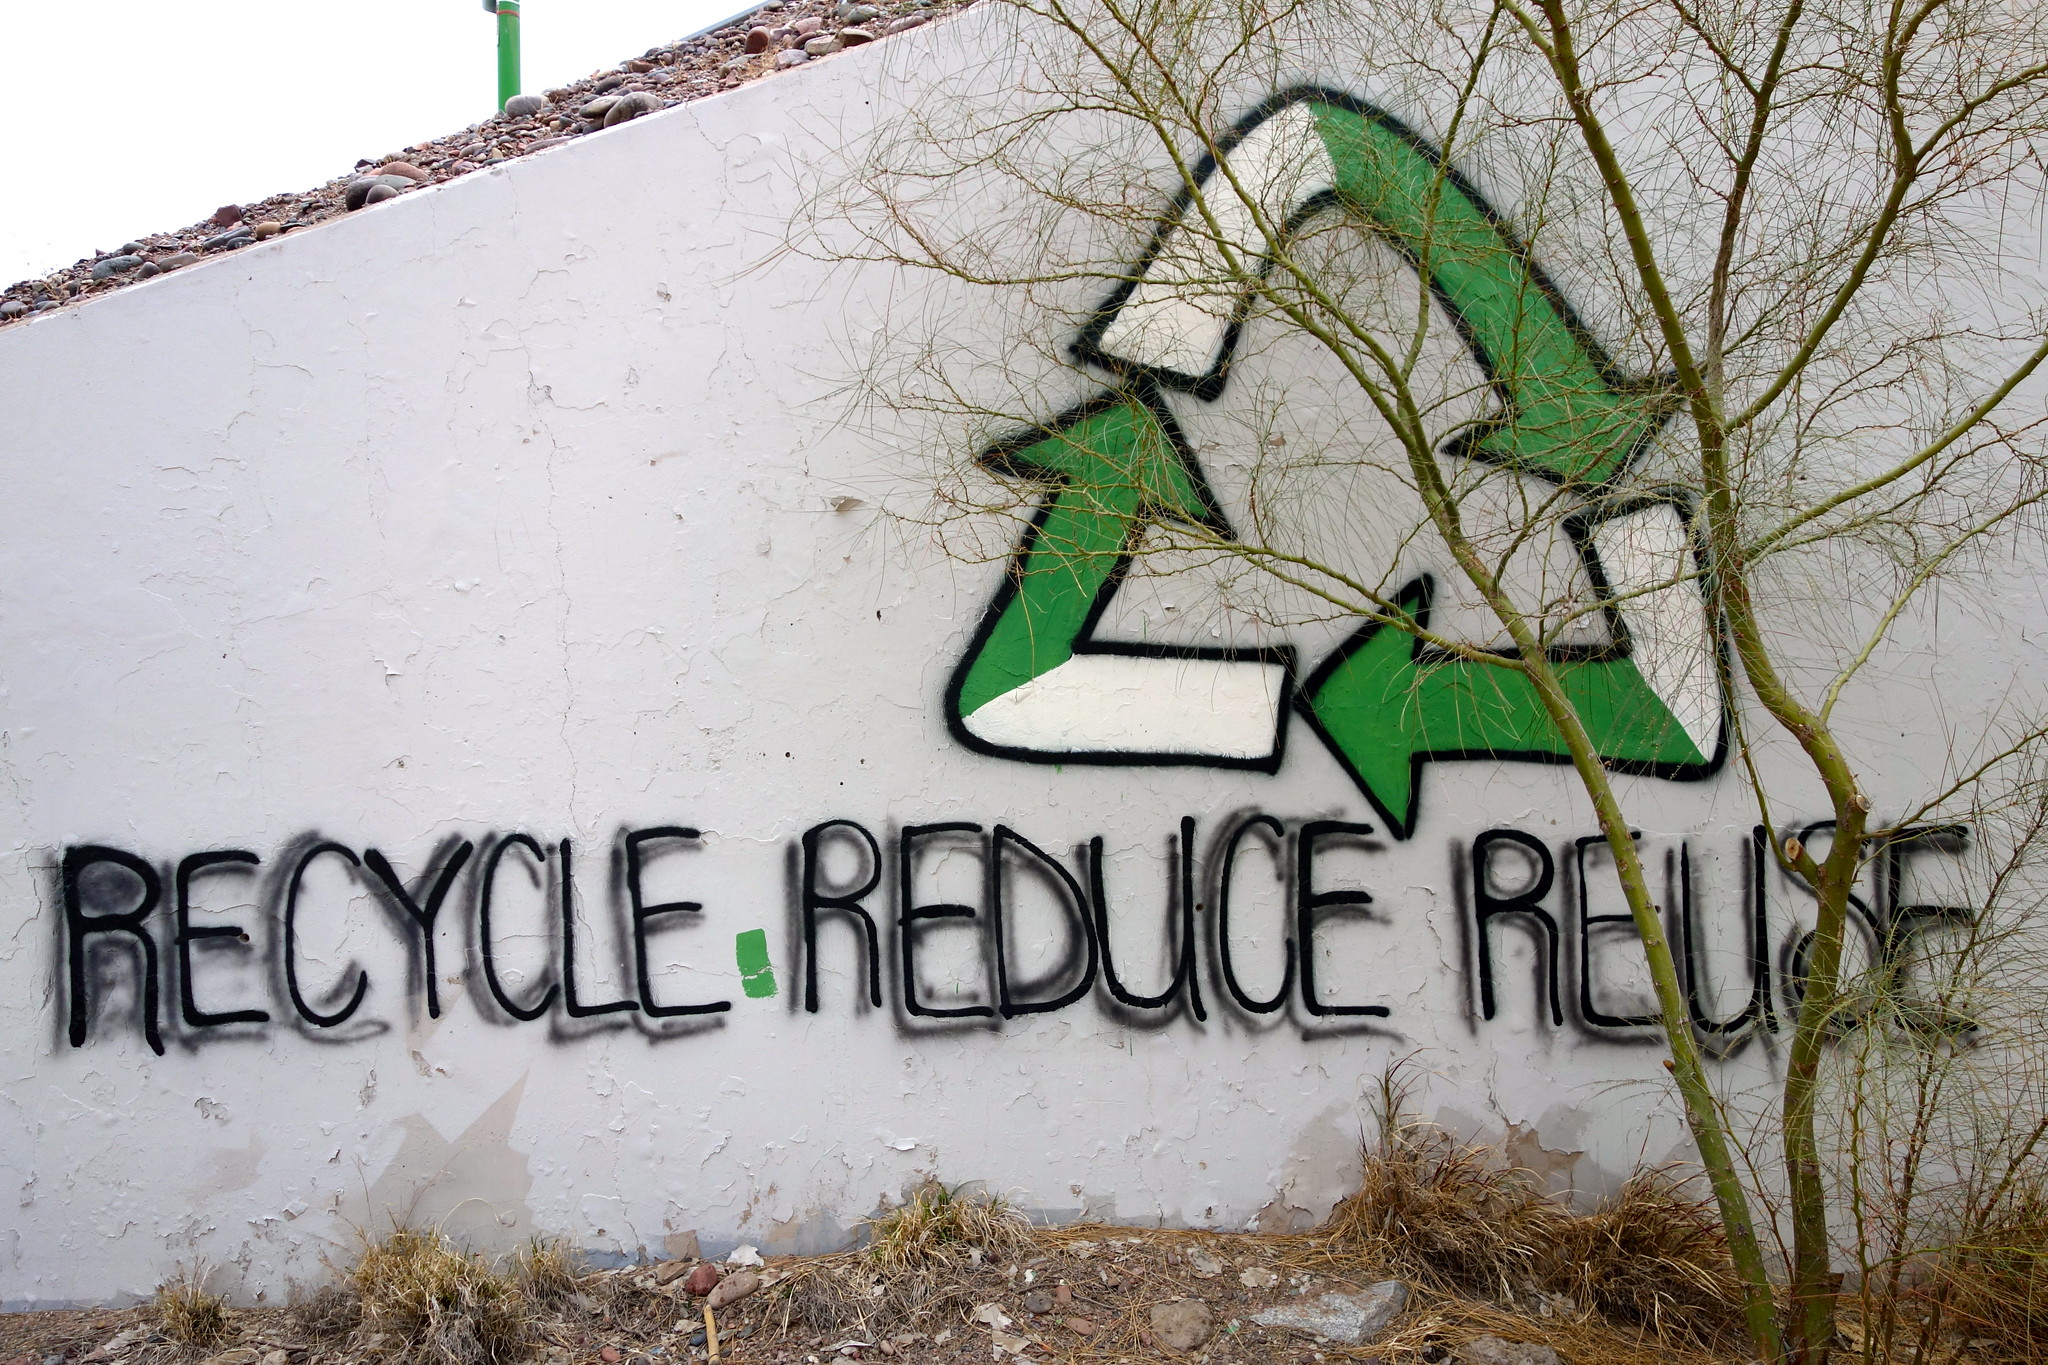 Recycle Reduce Re-Use eBay Re-Sell